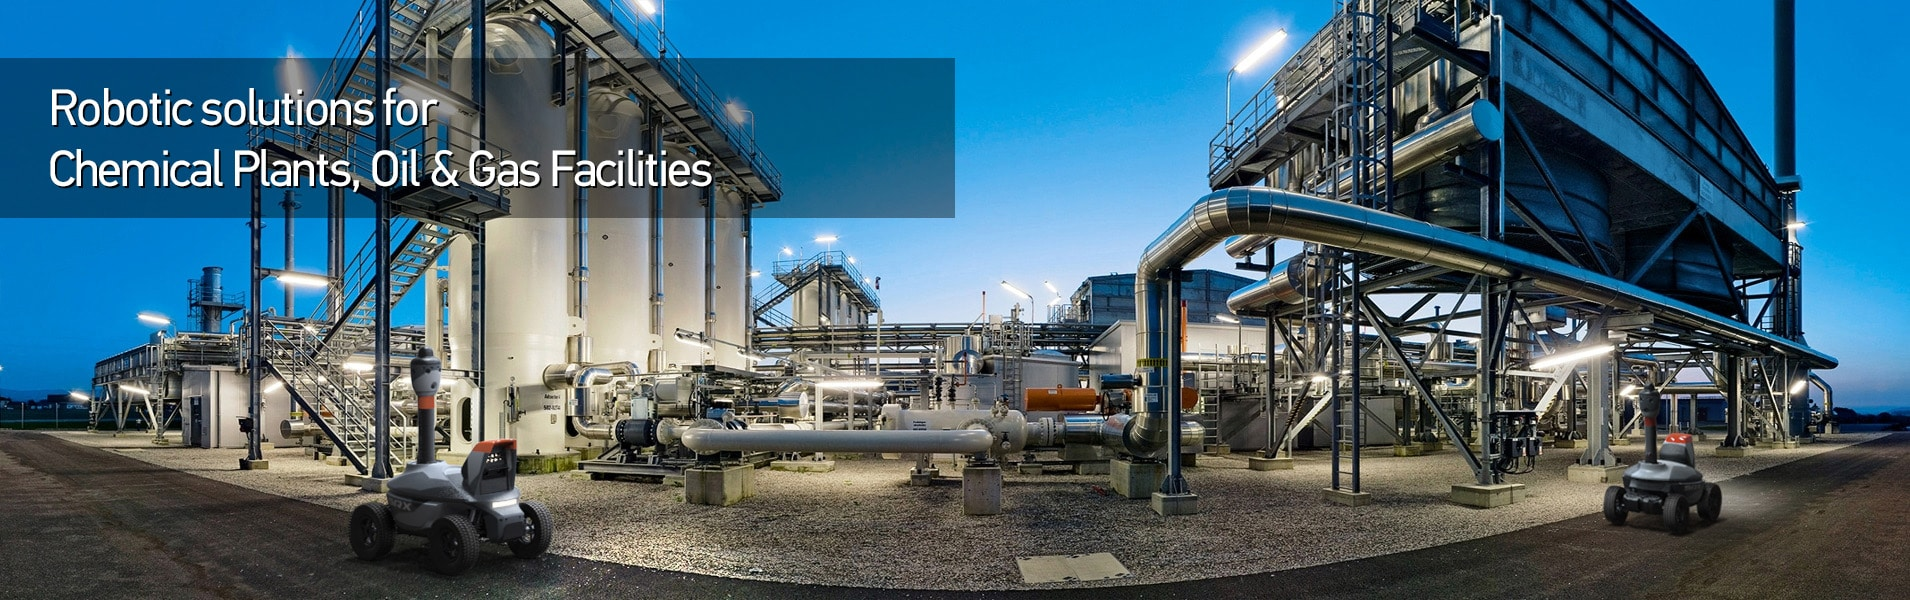 Chemical Plants Oil  Gas Facilities Leak Detection Security Surveillance and Monitoring